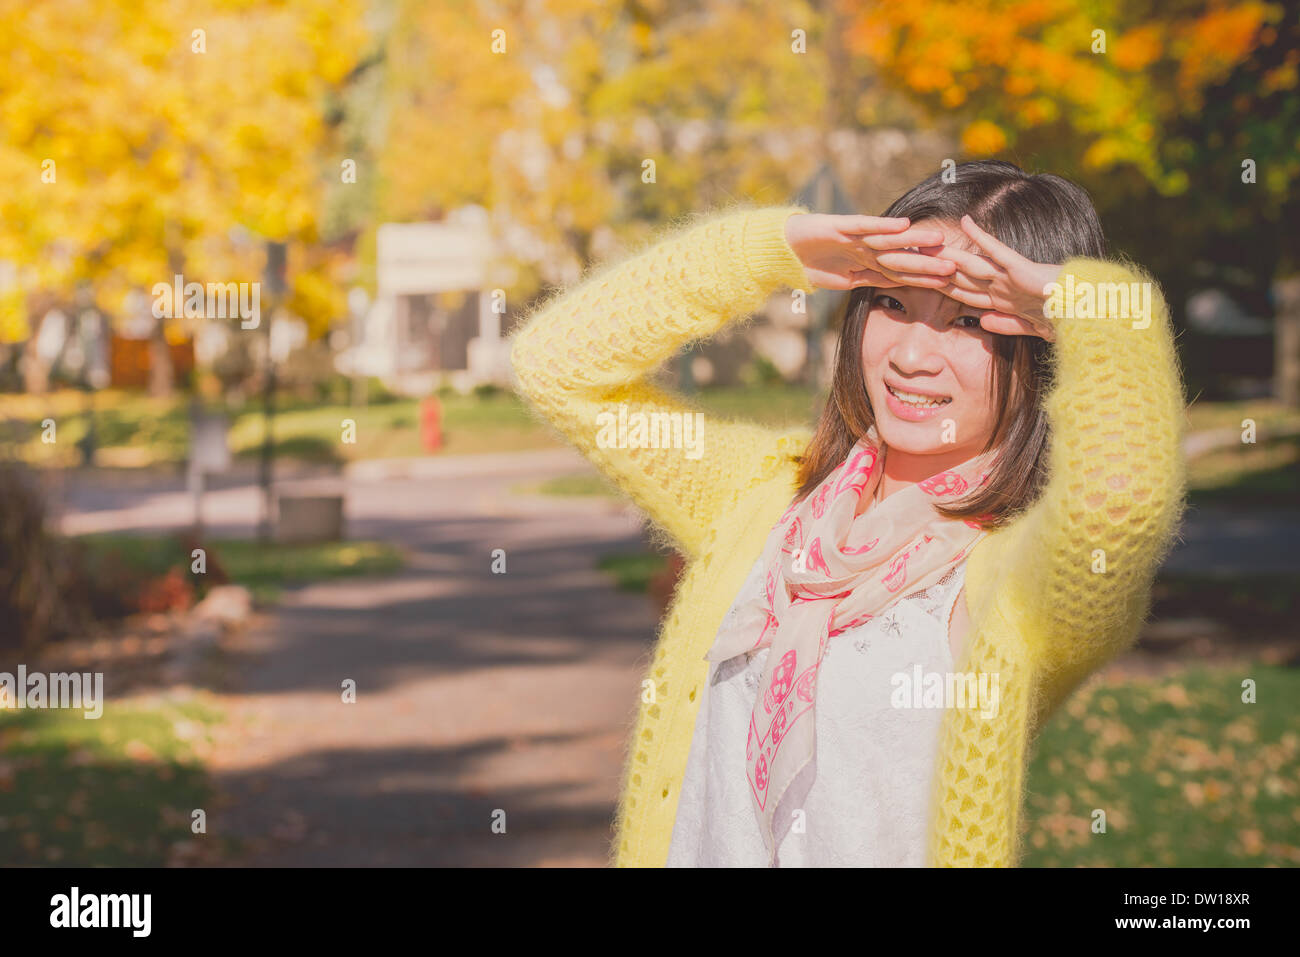 Woman shielding herself from the sun - Stock Image